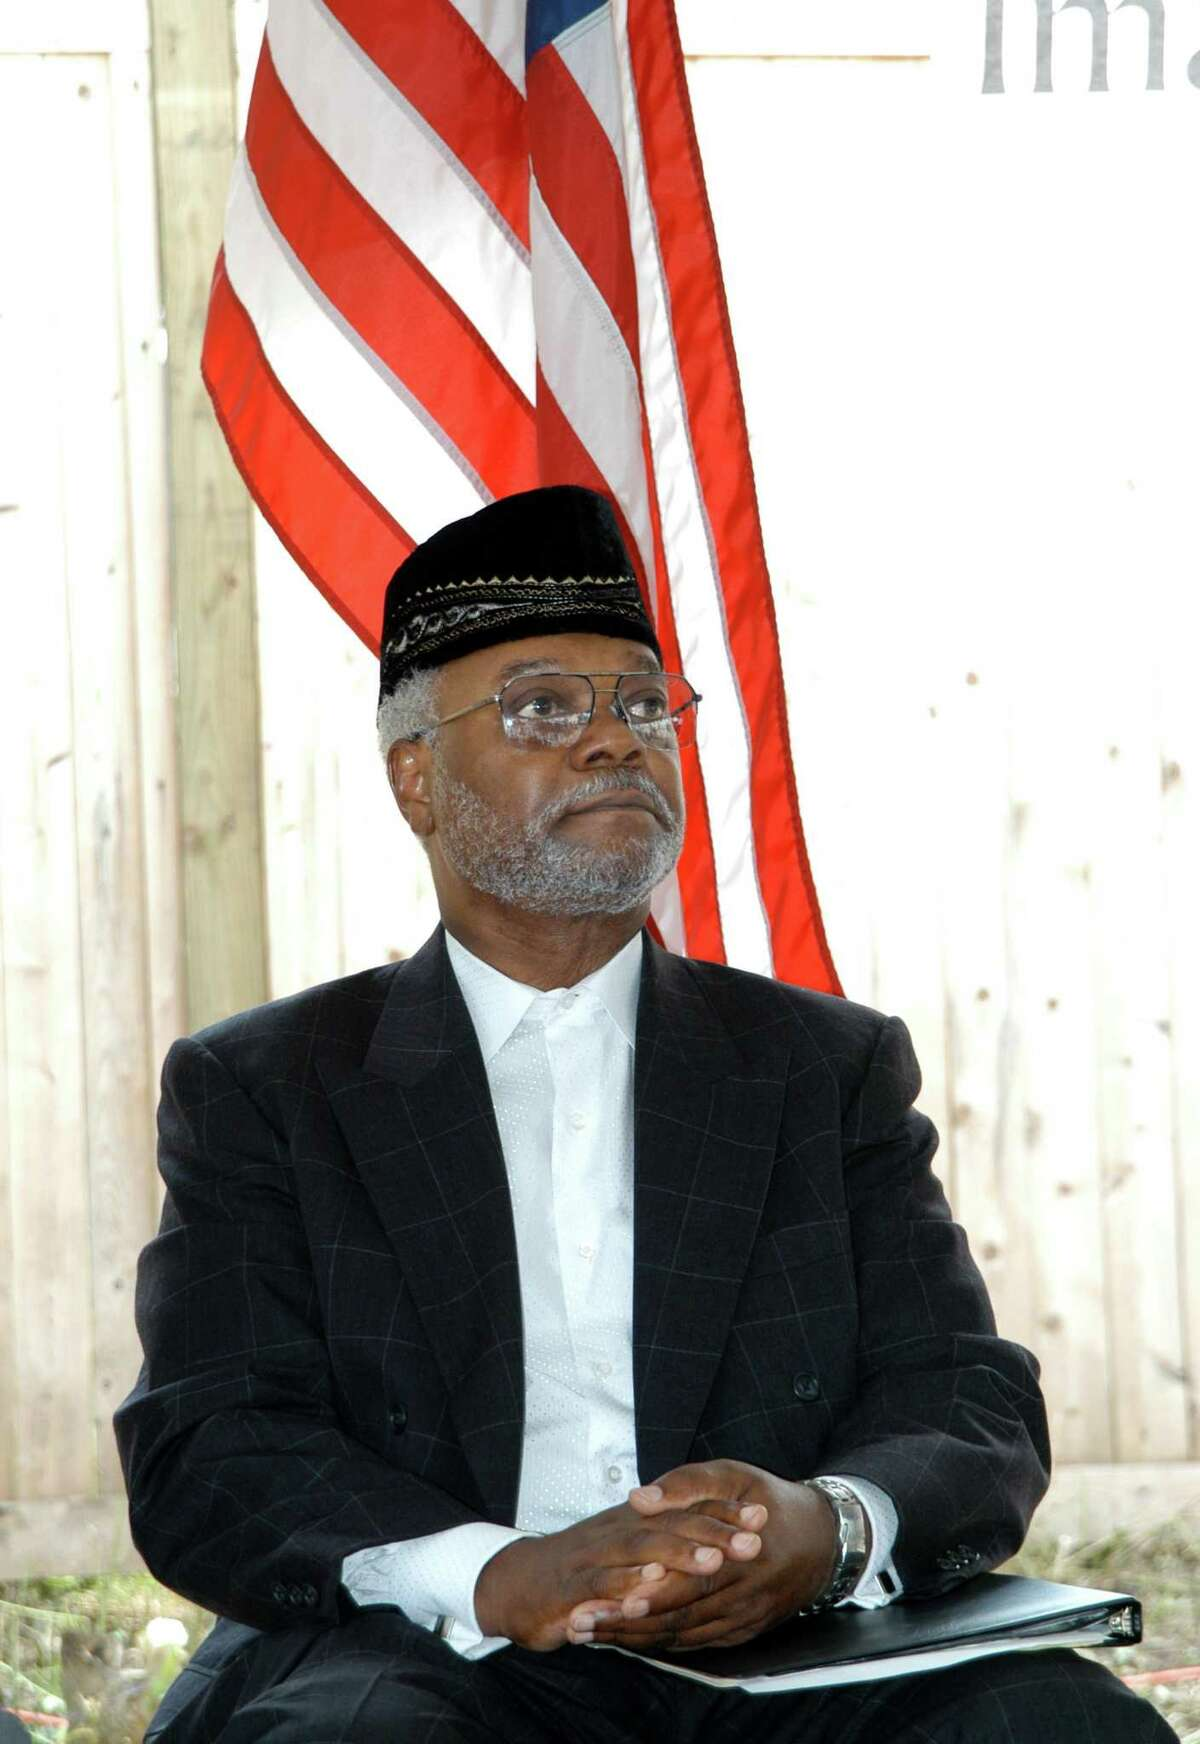 Imam Abdul-Majid Karim Hasan listens to speakers honoring him at a special ceremony at his Hamden mosque in 2004.